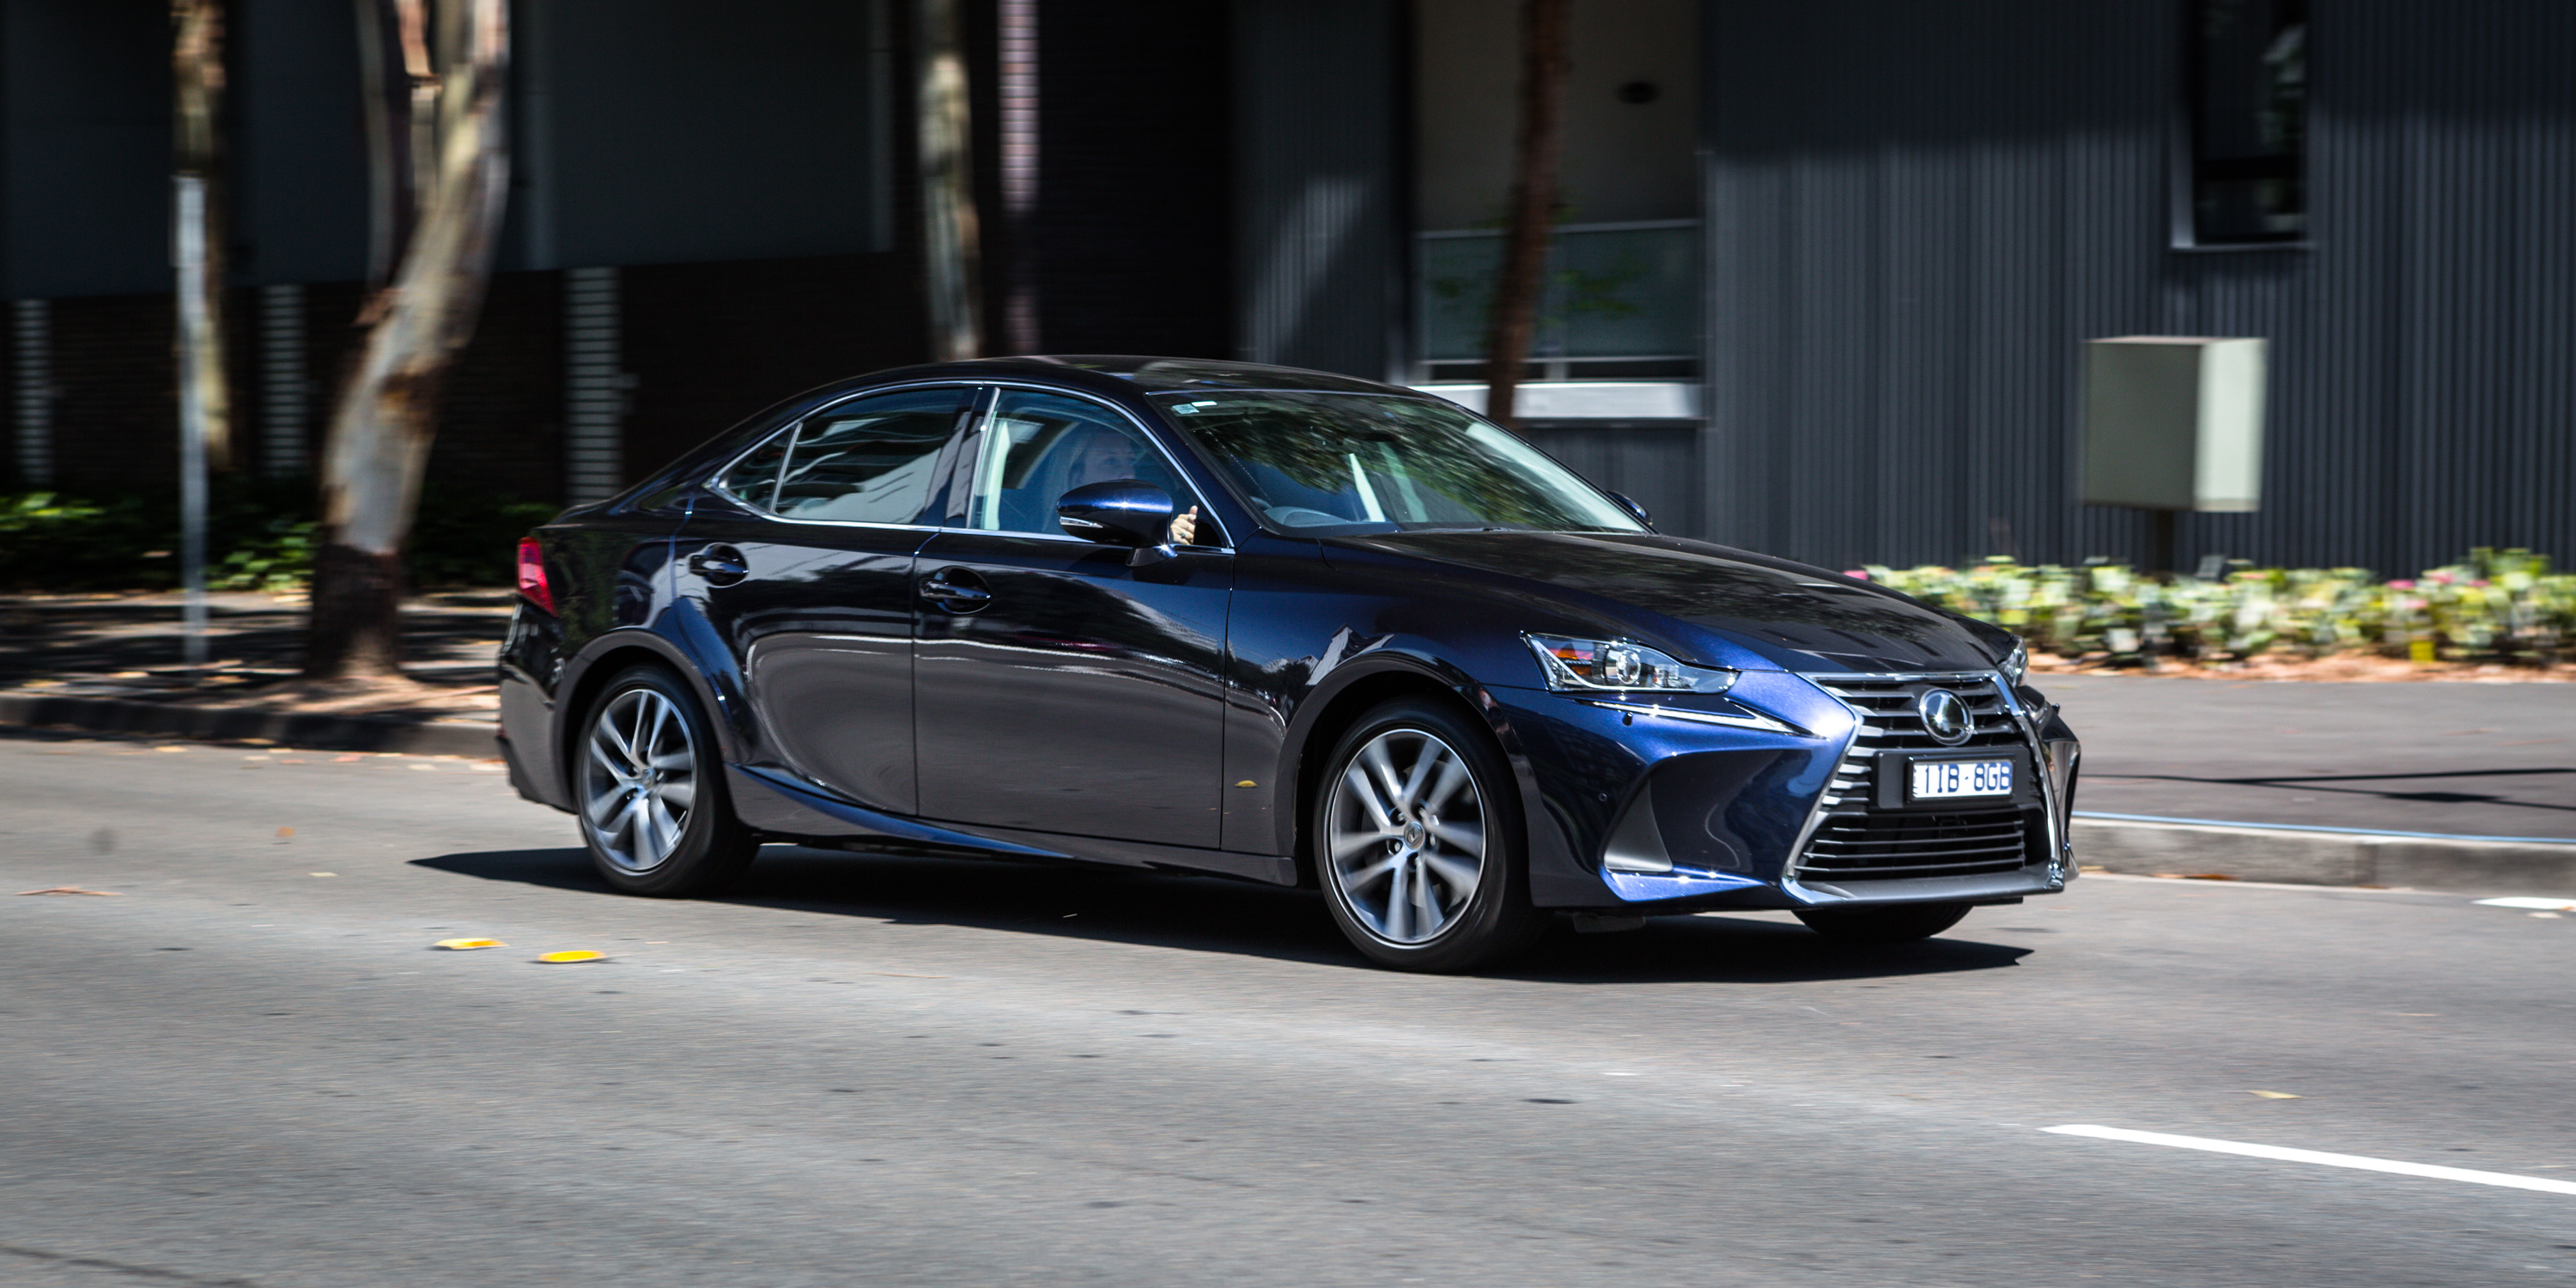 lexus and luxury car Browse new and used luxury cars by price and features find reviews, incentives & deals on popular luxury cars near you at edmundscom find your favorite luxury cars on edmunds.